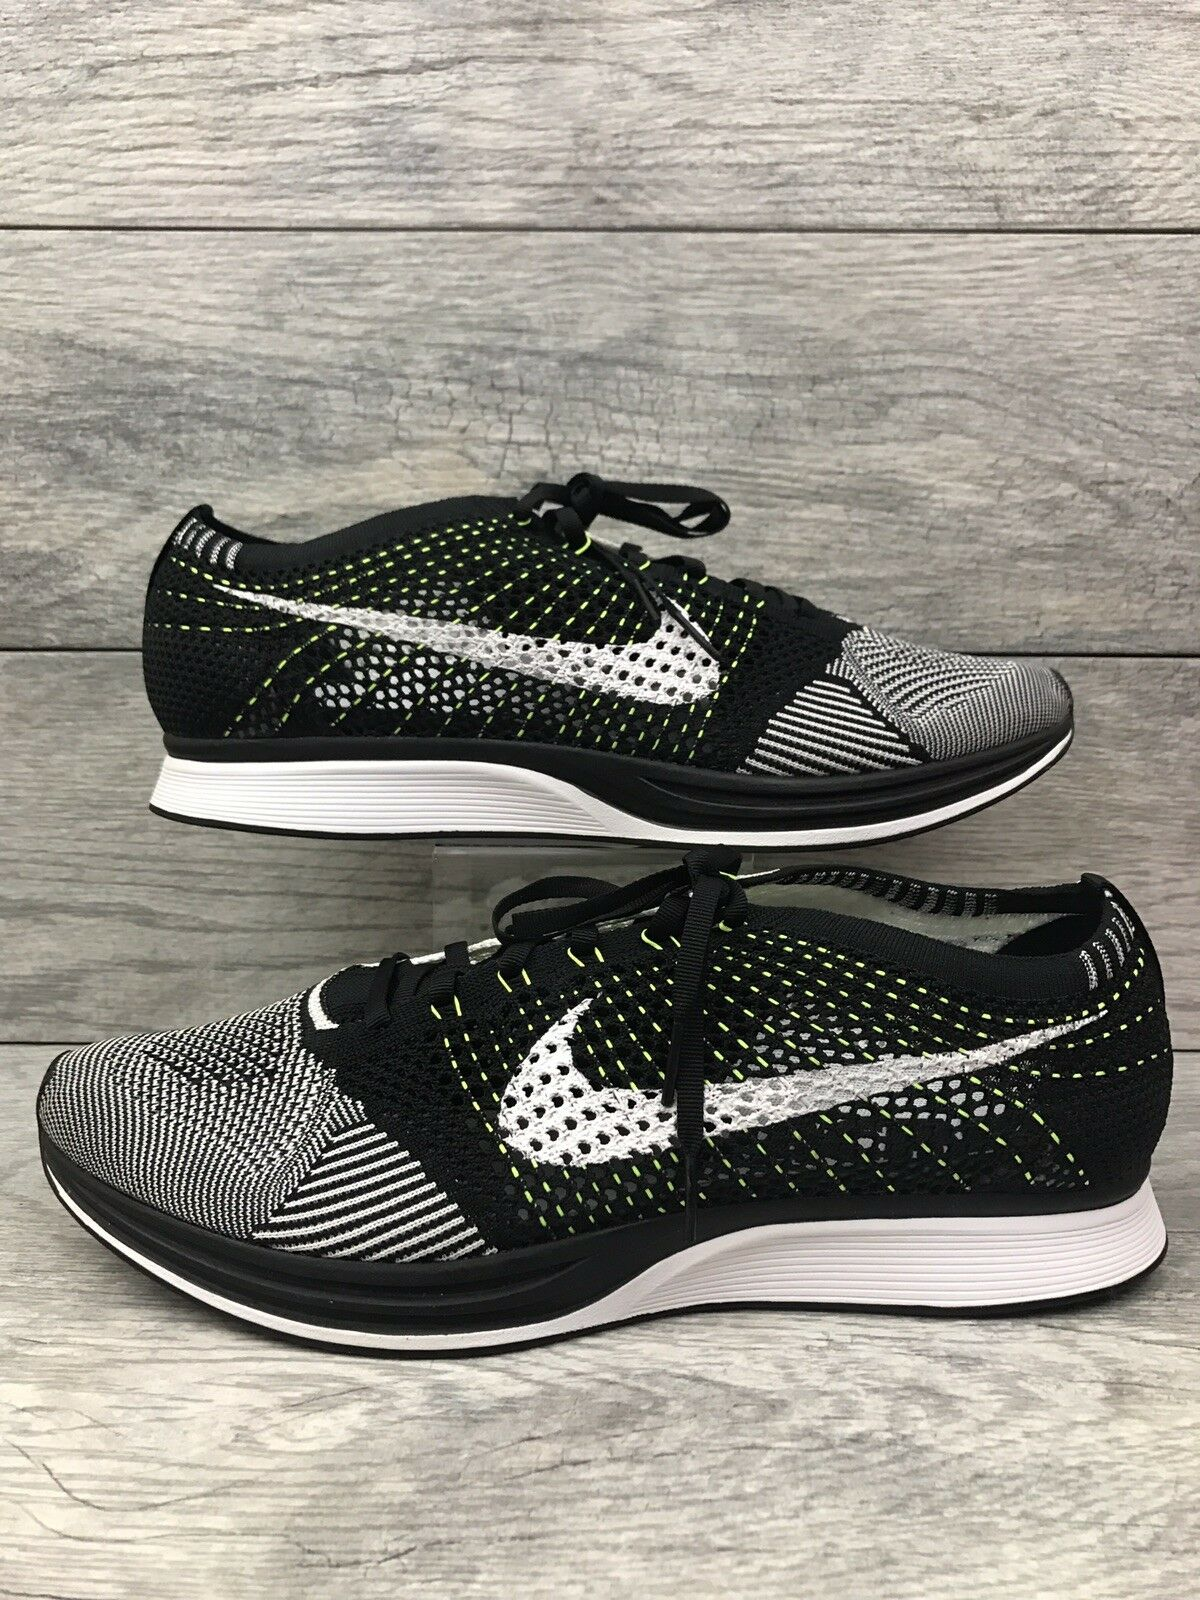 Nike Flyknit Racer Running shoes Mens size 13 Oreo Volt 526628-011